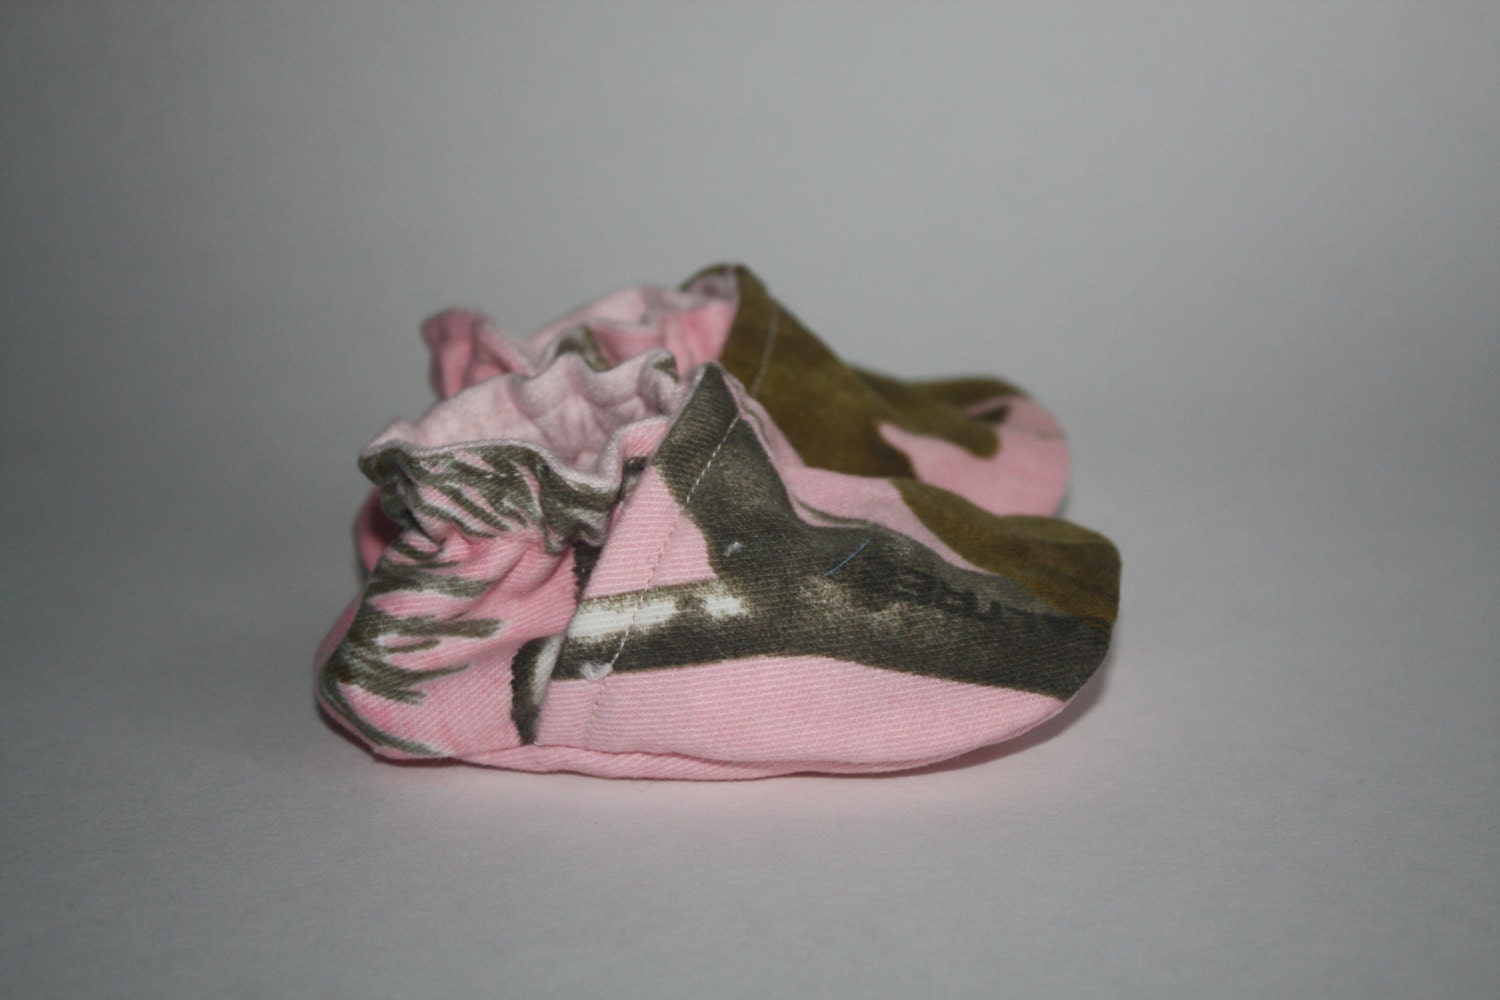 pink realtree ap camo baby shoes 0 3 months ready to by